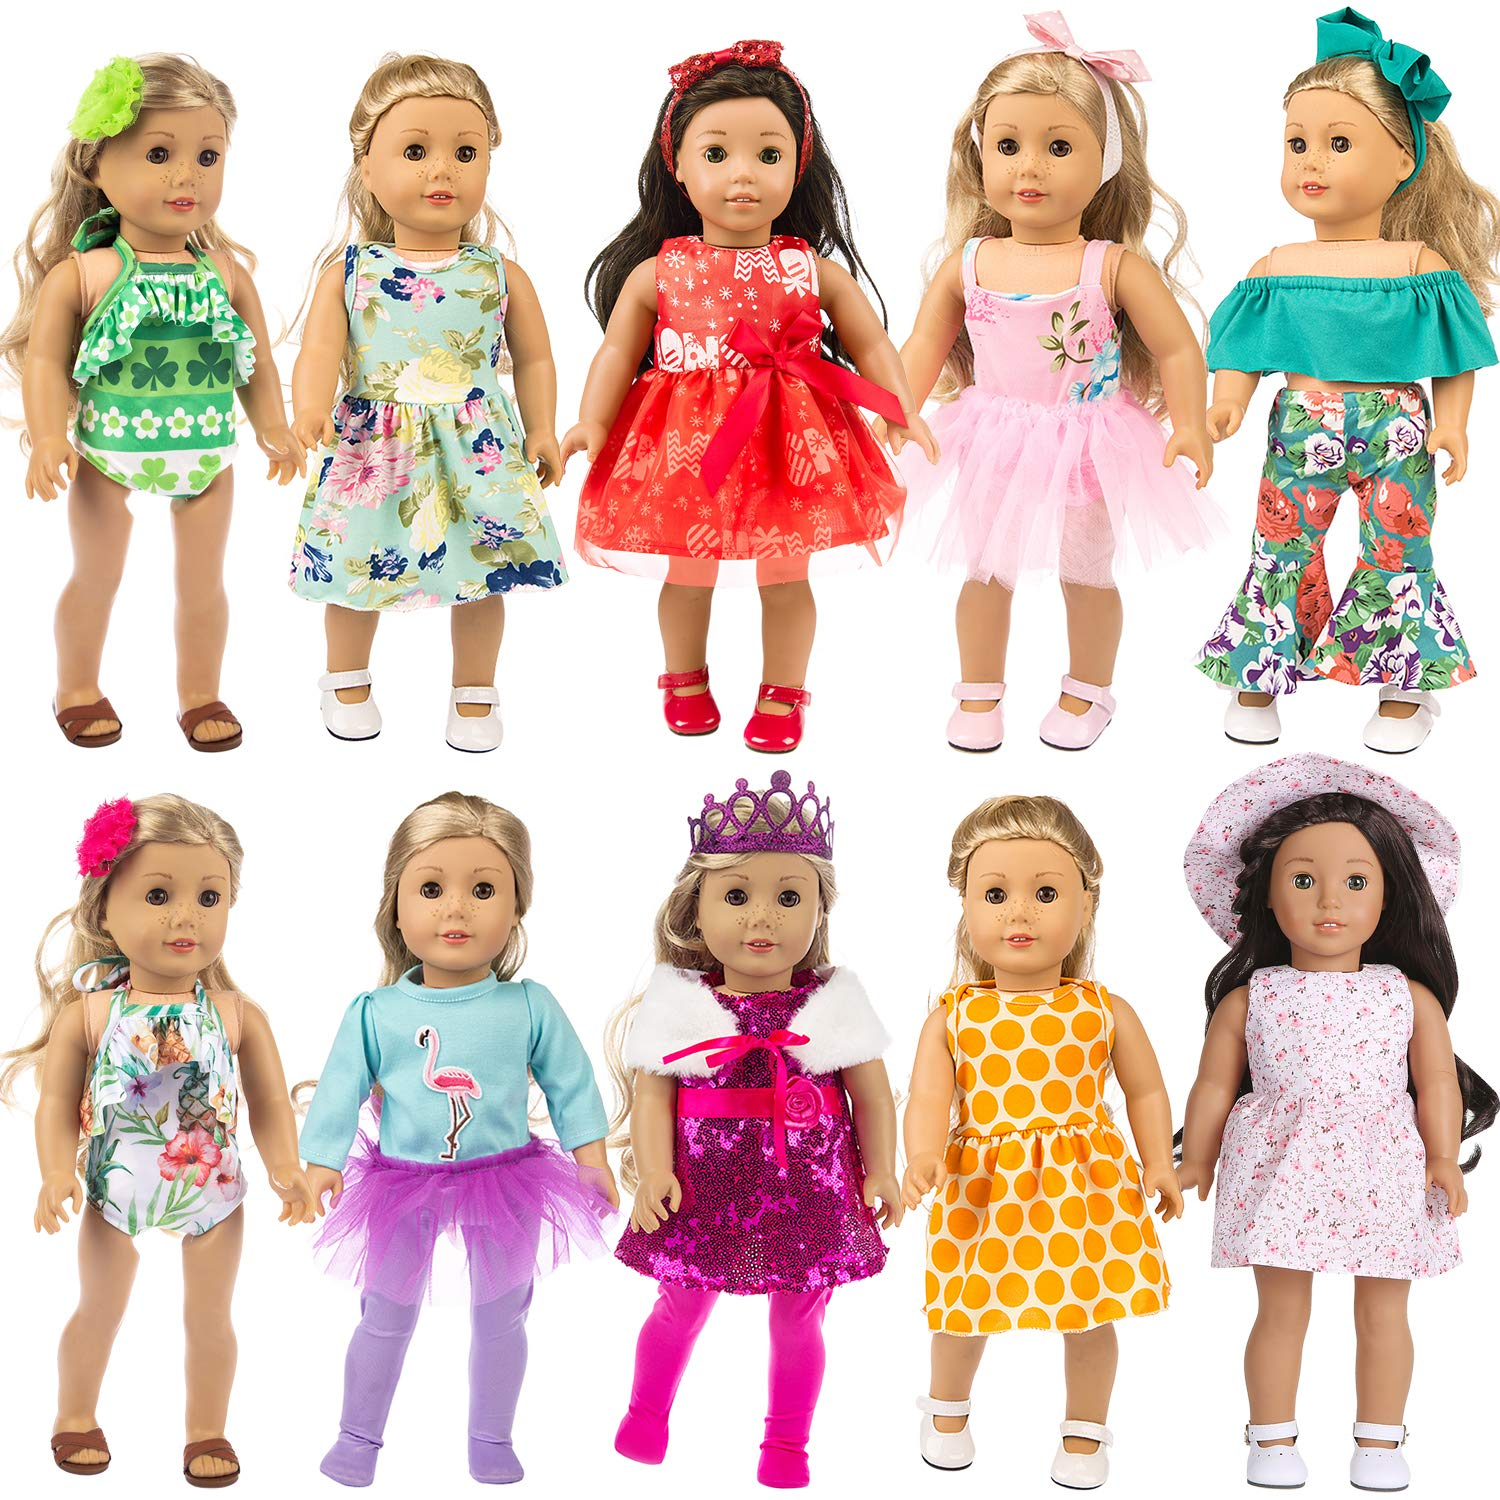 ZITA ELEMENT 24 Pcs Girl Doll Clothes Dress for American 18 Inch Doll Clothes and Accessories - Including 10 Complete Set of Clothing Outfits with Hair Bands, Hair Clips, Crown and Cap by ZITA ELEMENT